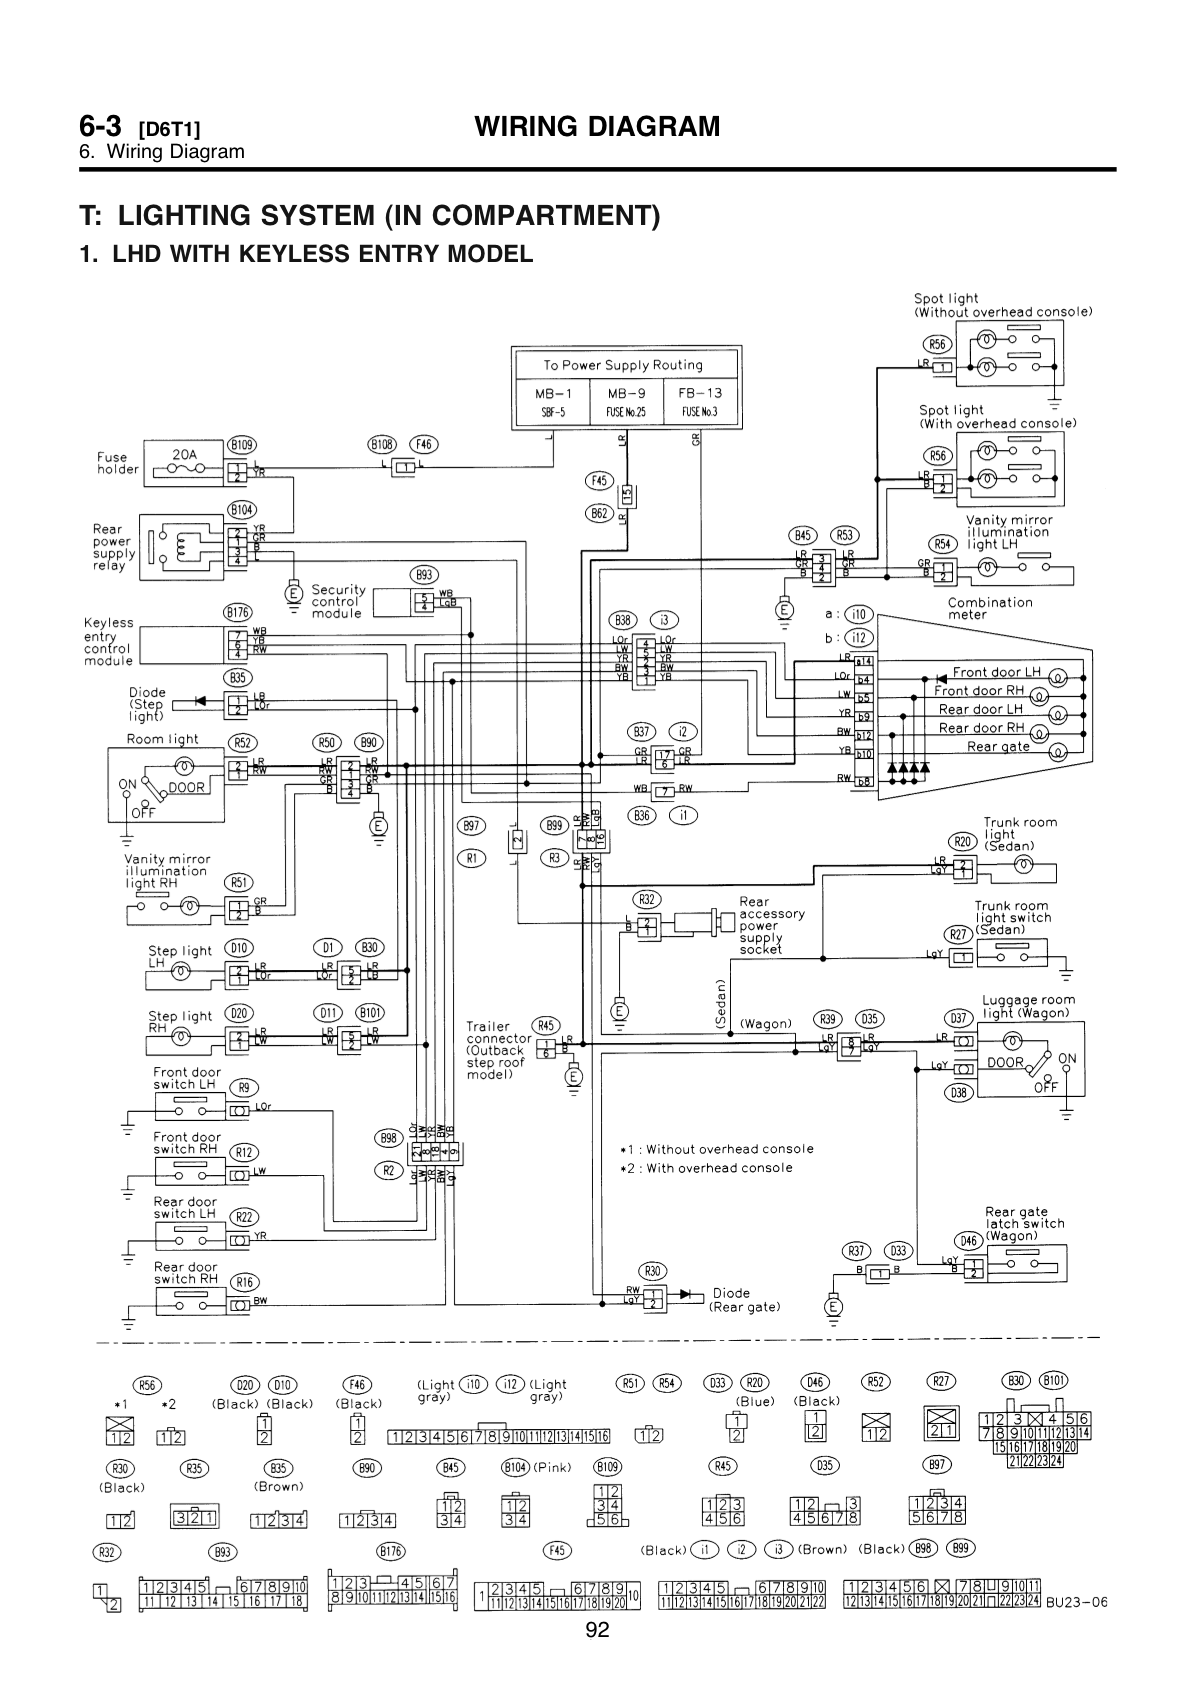 05 Impreza Factory Radio Wiring Diagram Simple Guide About Wire Just Schematic Rh Lailamaed Co Uk